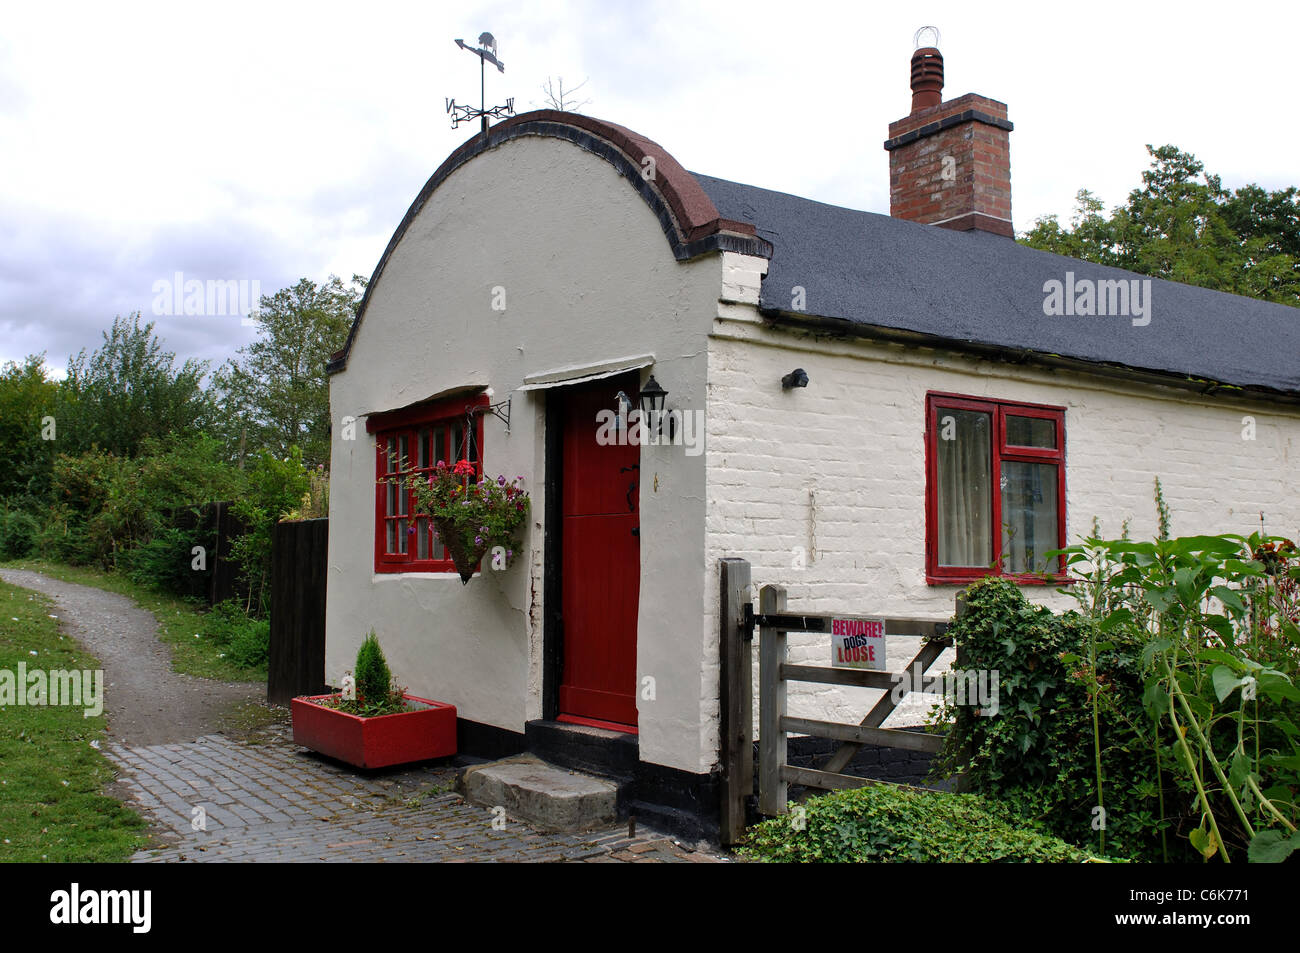 Barrel-roofed cottage by lock 28 on the Stratford Canal, Warwickshire, UK - Stock Image